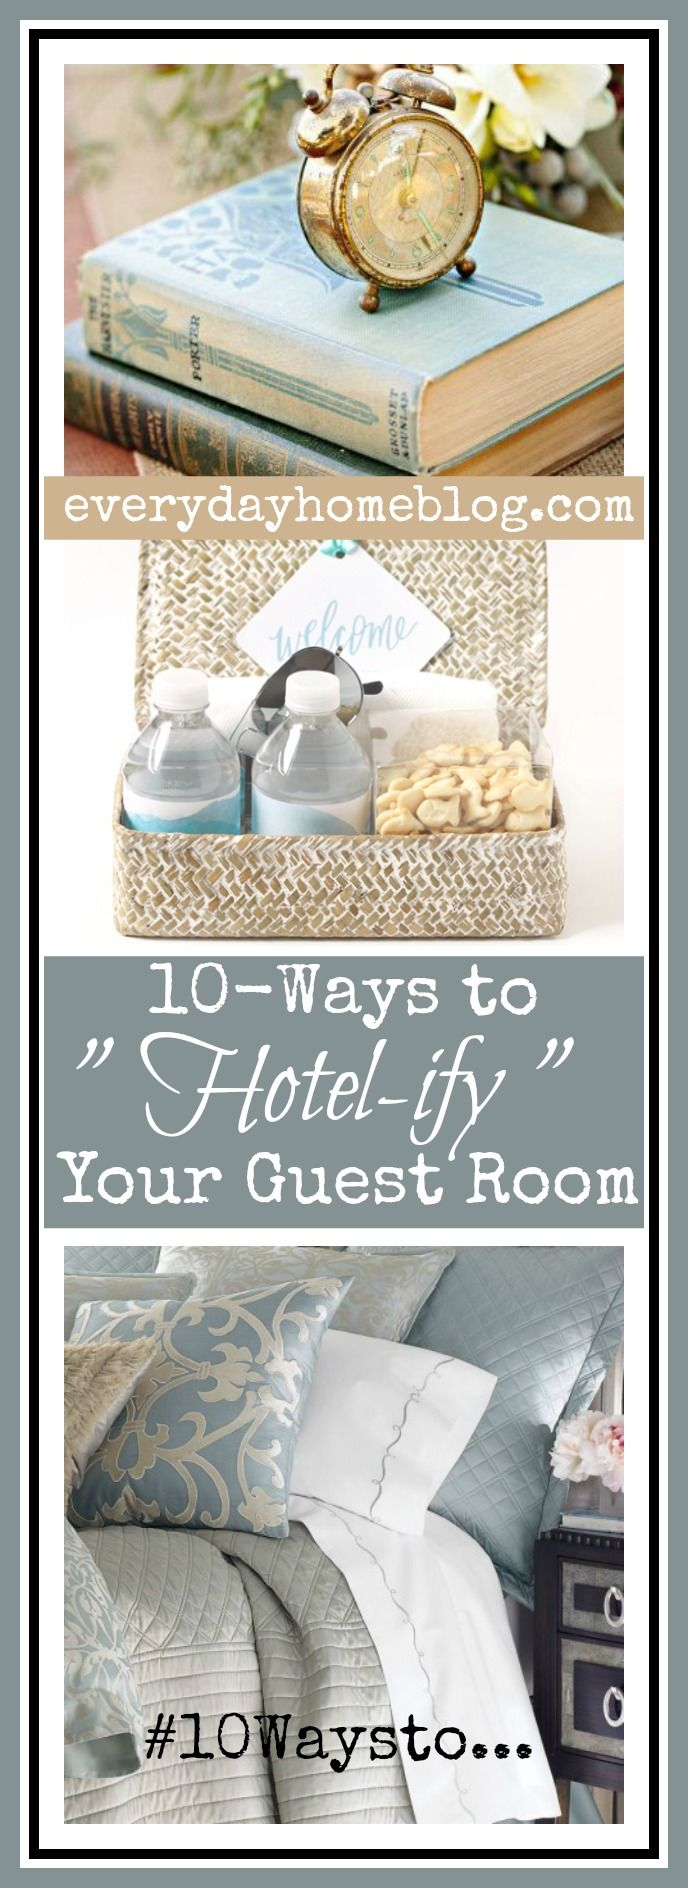 office guest room ideas stuff. best 25 my wifi password ideas on pinterest get change your and room essentials office guest stuff e